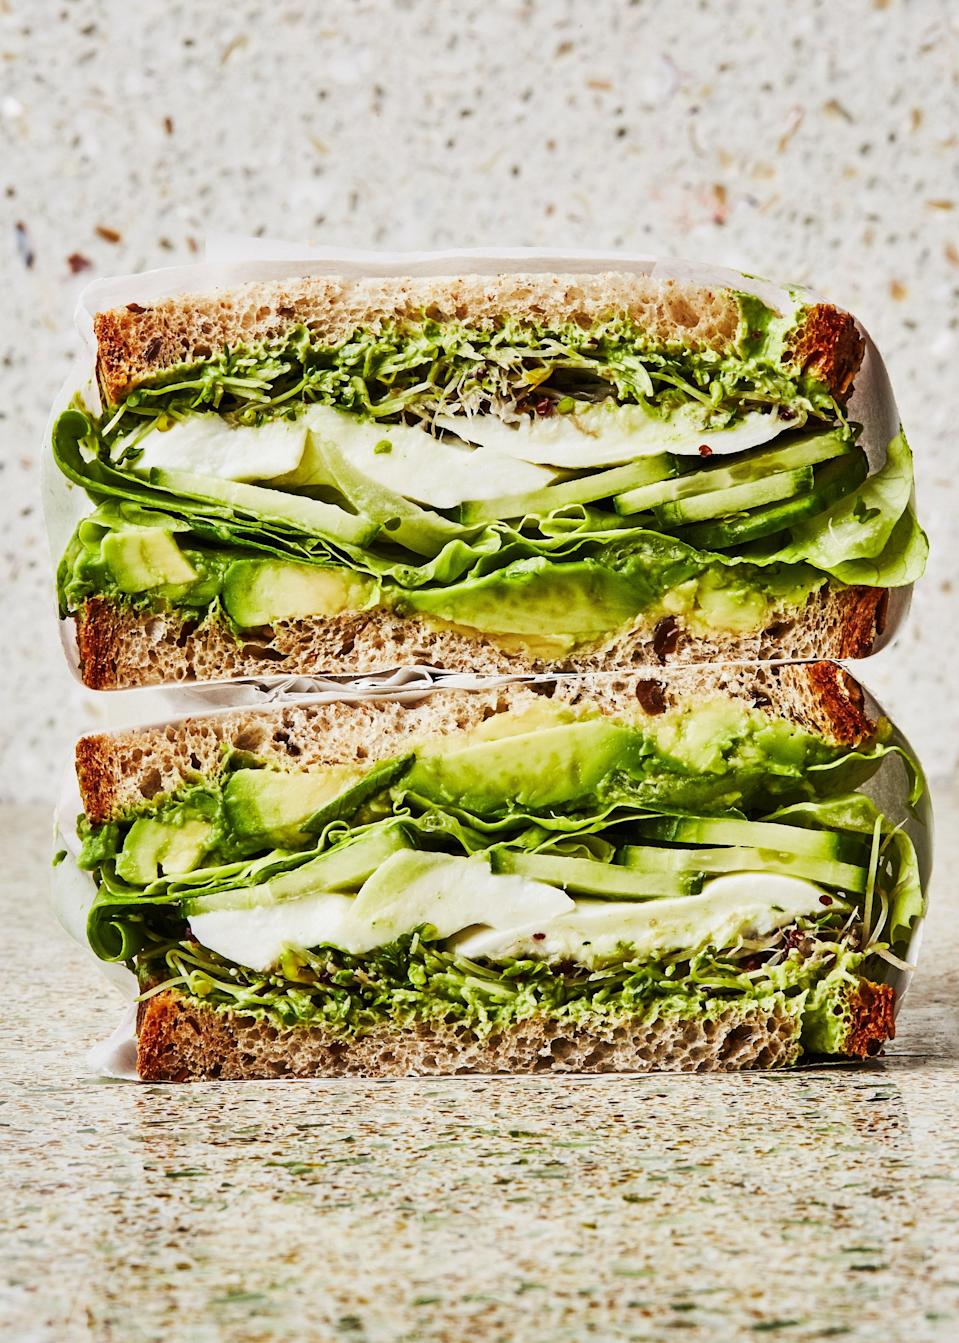 """Up the creamy factor of your sandwich by layering in some ripe avocado, plus mozzarella, and a tangy Greek yogurt-based dressing. <a href=""""https://www.epicurious.com/recipes/food/views/green-goddess-crunch-sandwich?mbid=synd_yahoo_rss"""" rel=""""nofollow noopener"""" target=""""_blank"""" data-ylk=""""slk:See recipe."""" class=""""link rapid-noclick-resp"""">See recipe.</a>"""